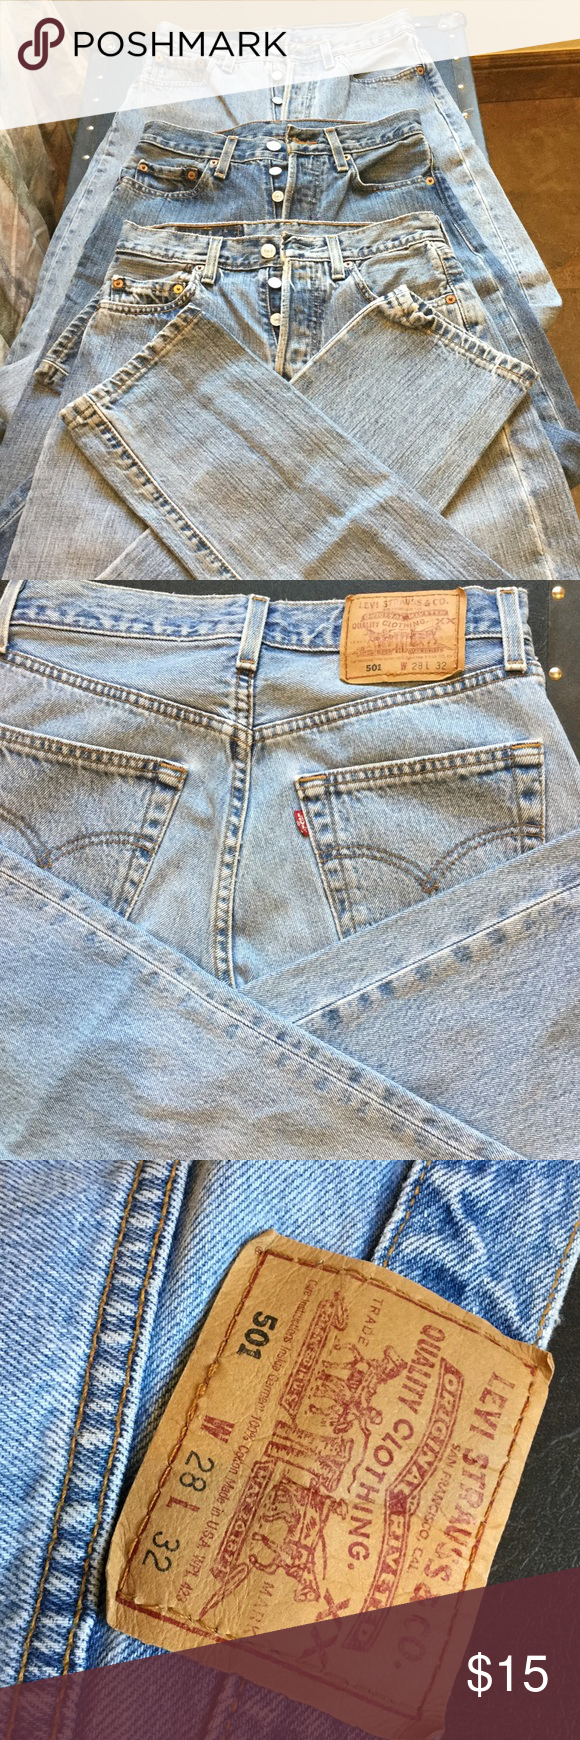 Levi's 501 jeans W28/L32 button front waist fit Levi's jeans gently worn, no rips tears stains.  Not distressed? 100 percent cotton.  Button front, fits at waist.  No stretch.  Wear as is or make shorts or distress or whatever.  Have 2 more pair if interested.  I measure W36/L30 may have shrunk. Levi's Jeans Boyfriend